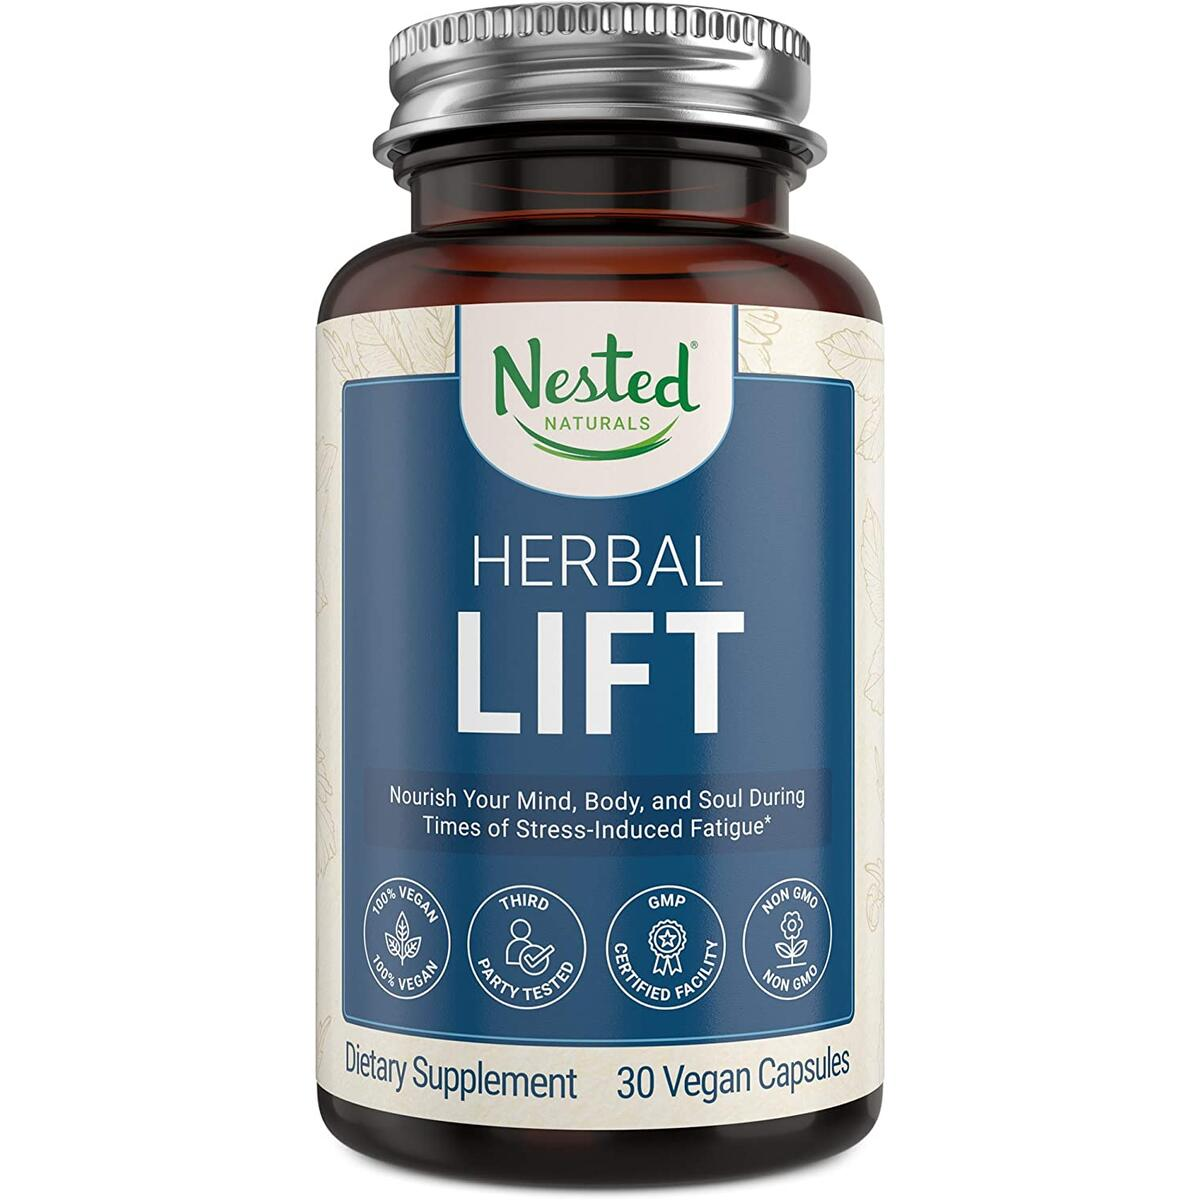 Nested Naturals Herbal Lift | Organic Beet Root Powder and Oatstraw | Calming and Positive Mood